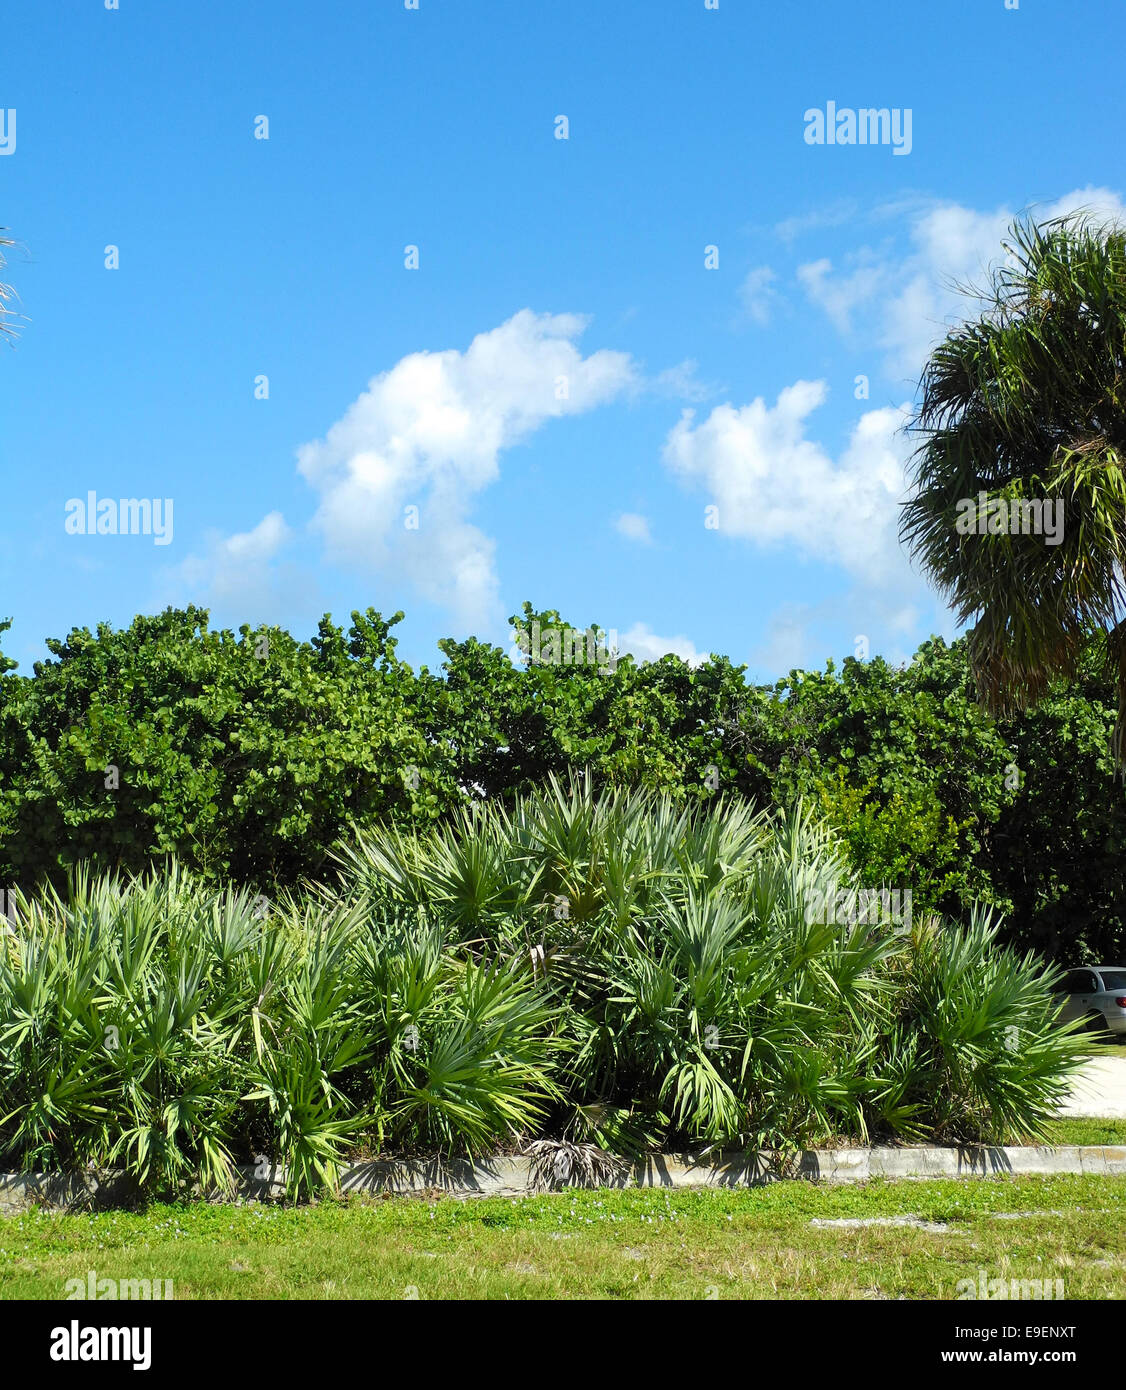 Florida tropical foliage saw palmetto trees palm trees for Typical landscaping plants